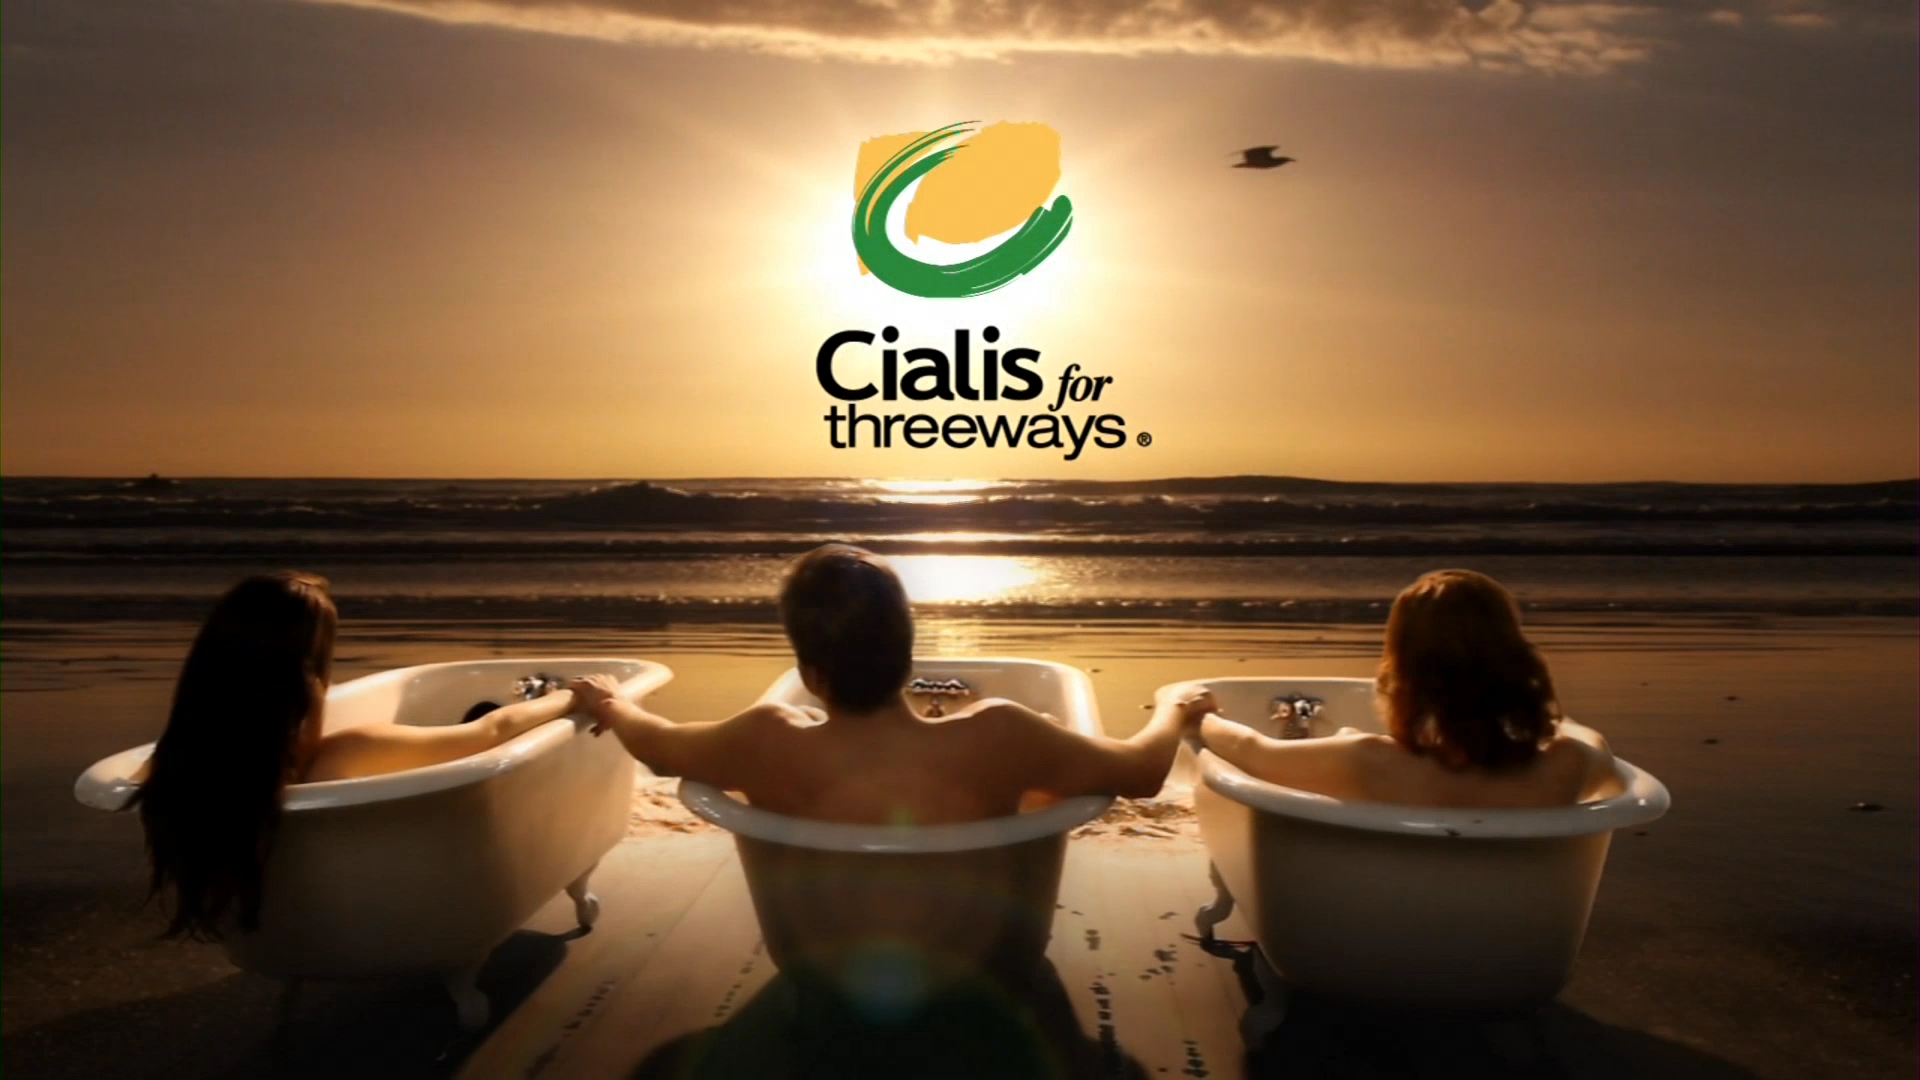 What's bathtubs cialis ads